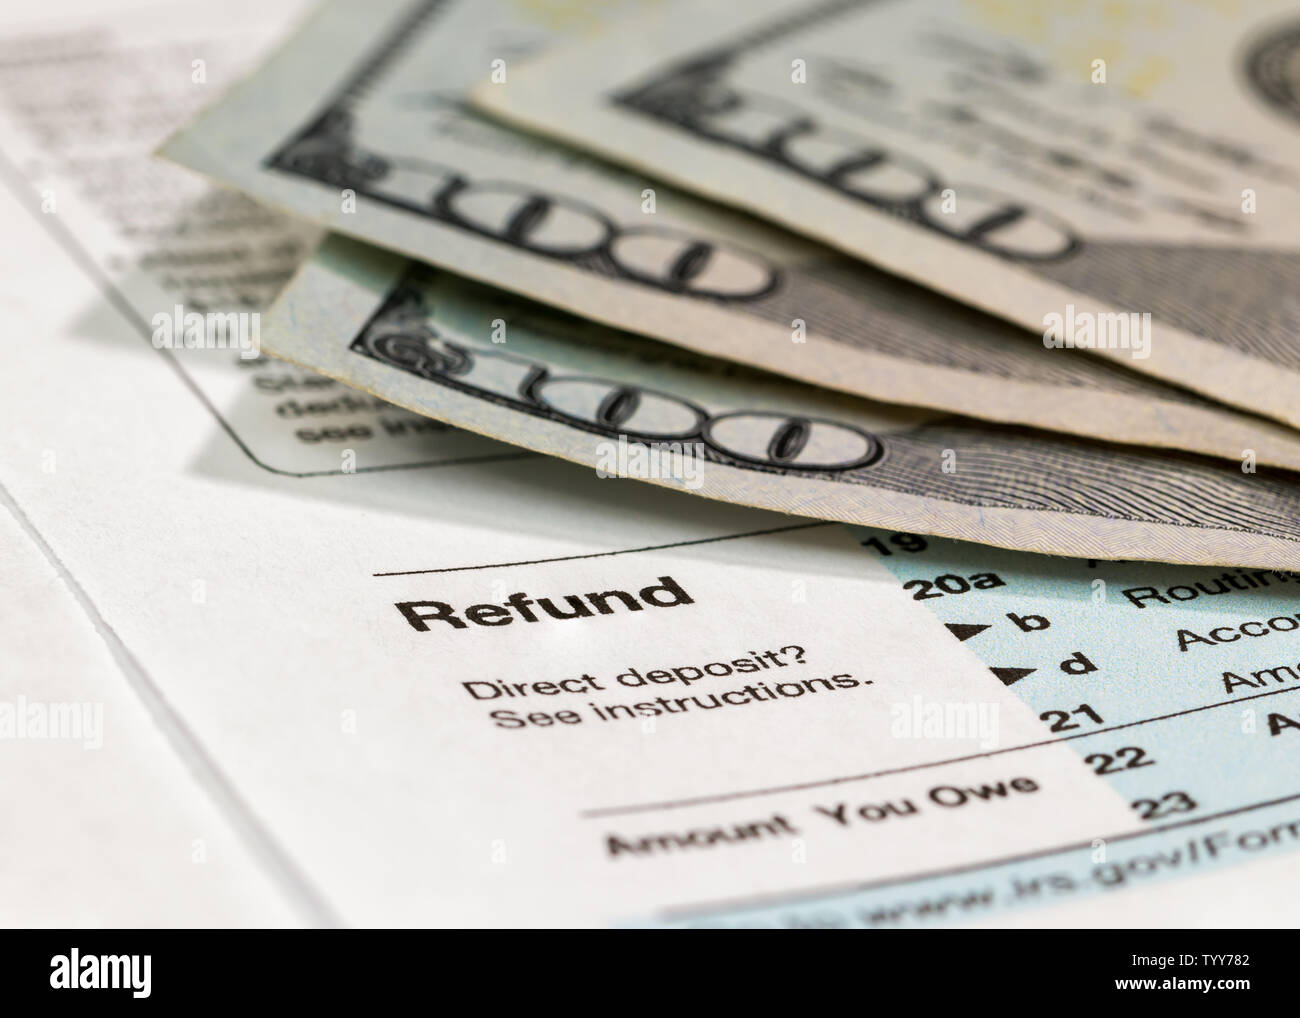 Income Tax Return Stock Photos & Income Tax Return Stock Images - Alamy